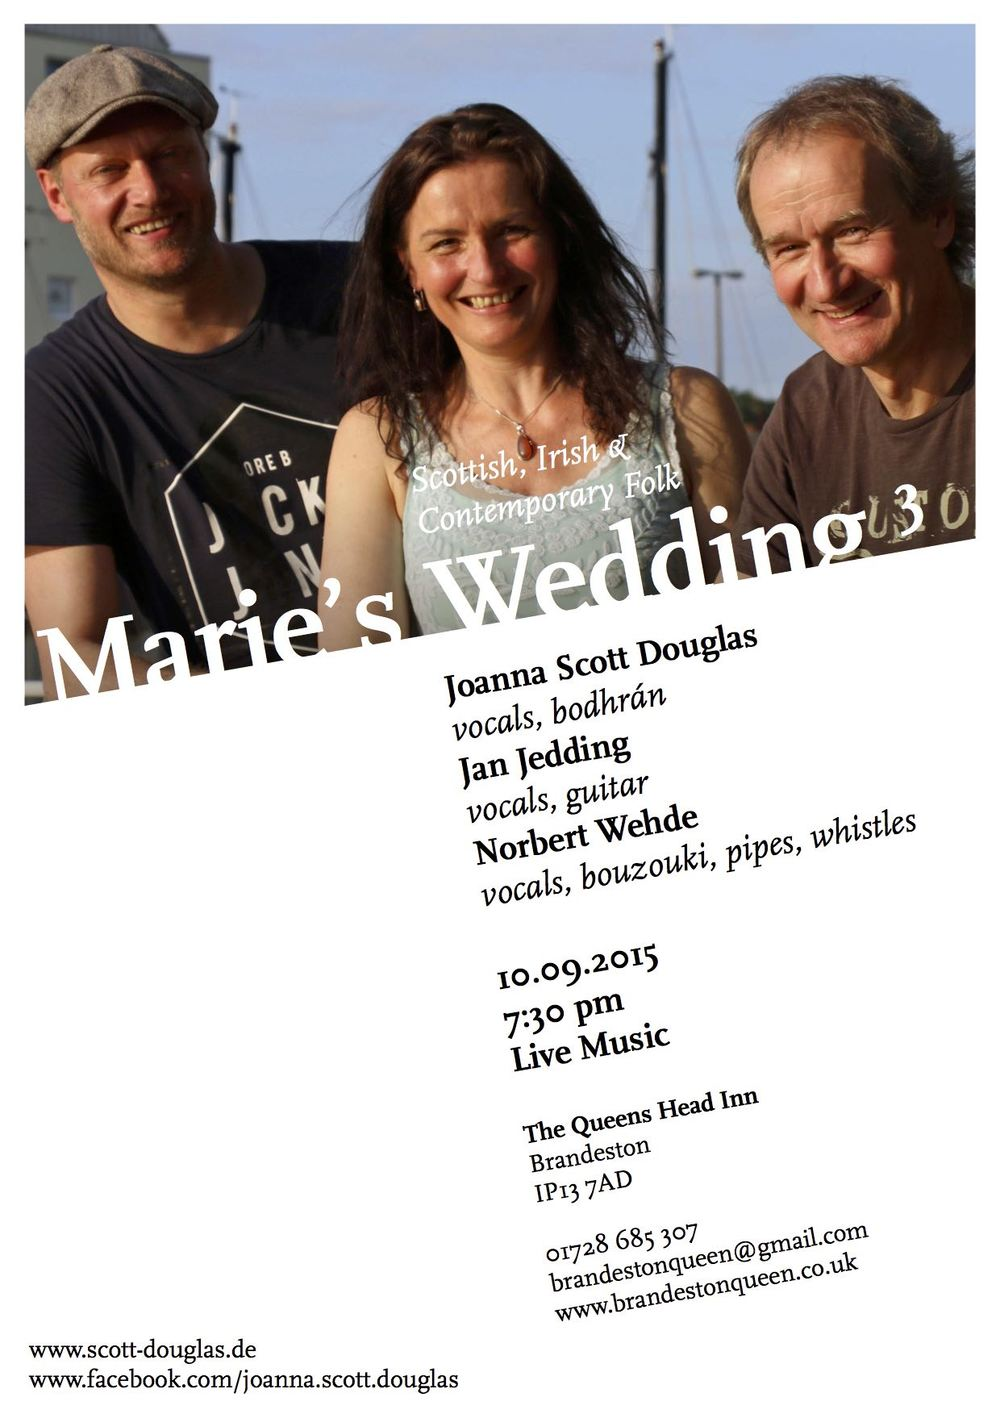 Marie's Wedding Flyer